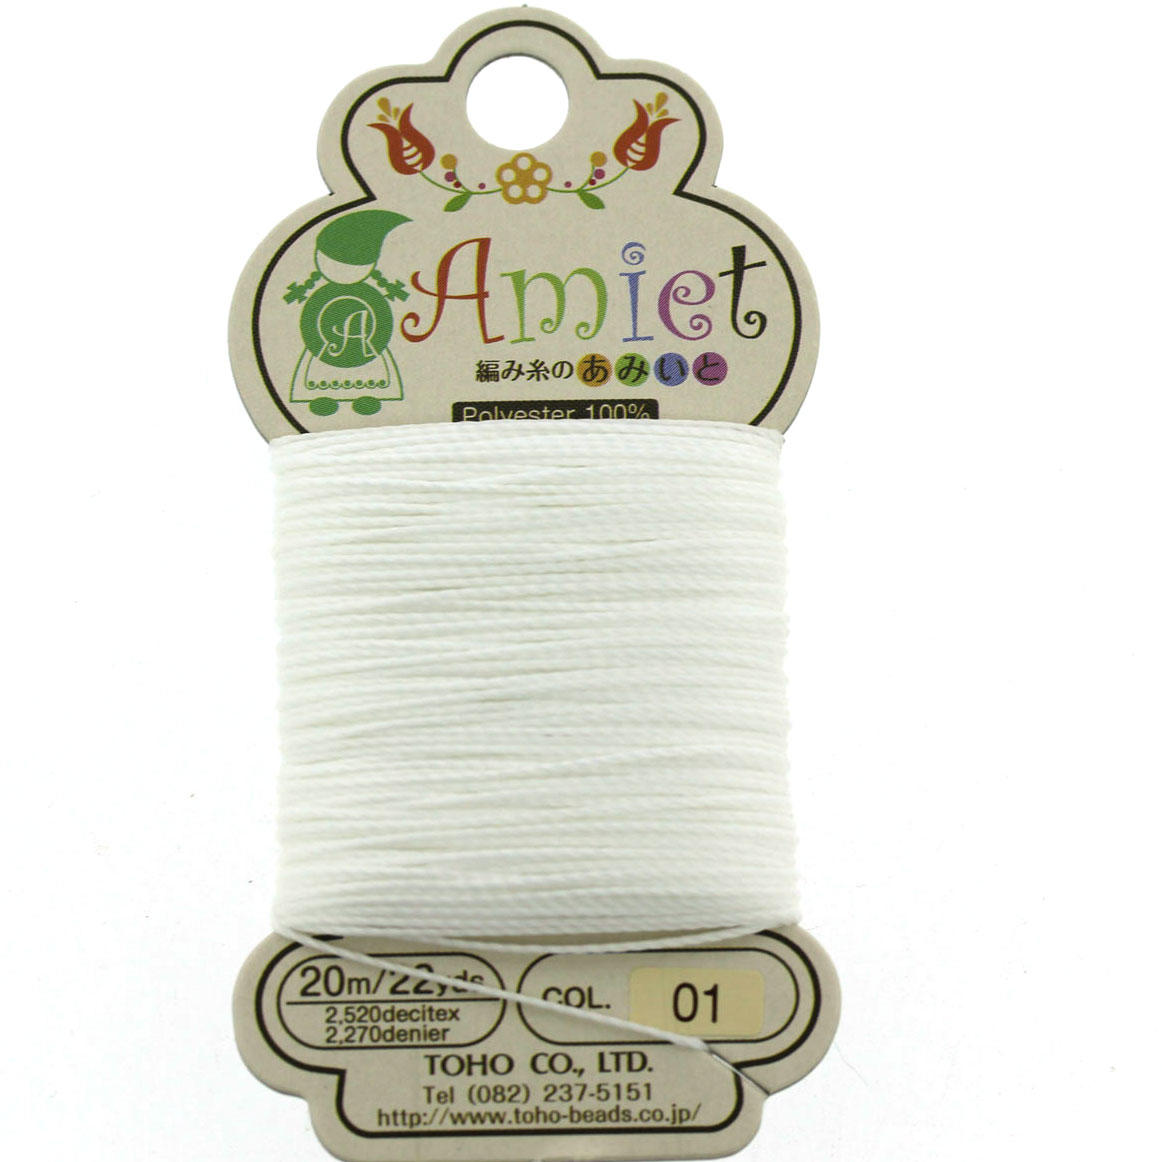 White Amiet Polyester Bead Cord from Toho